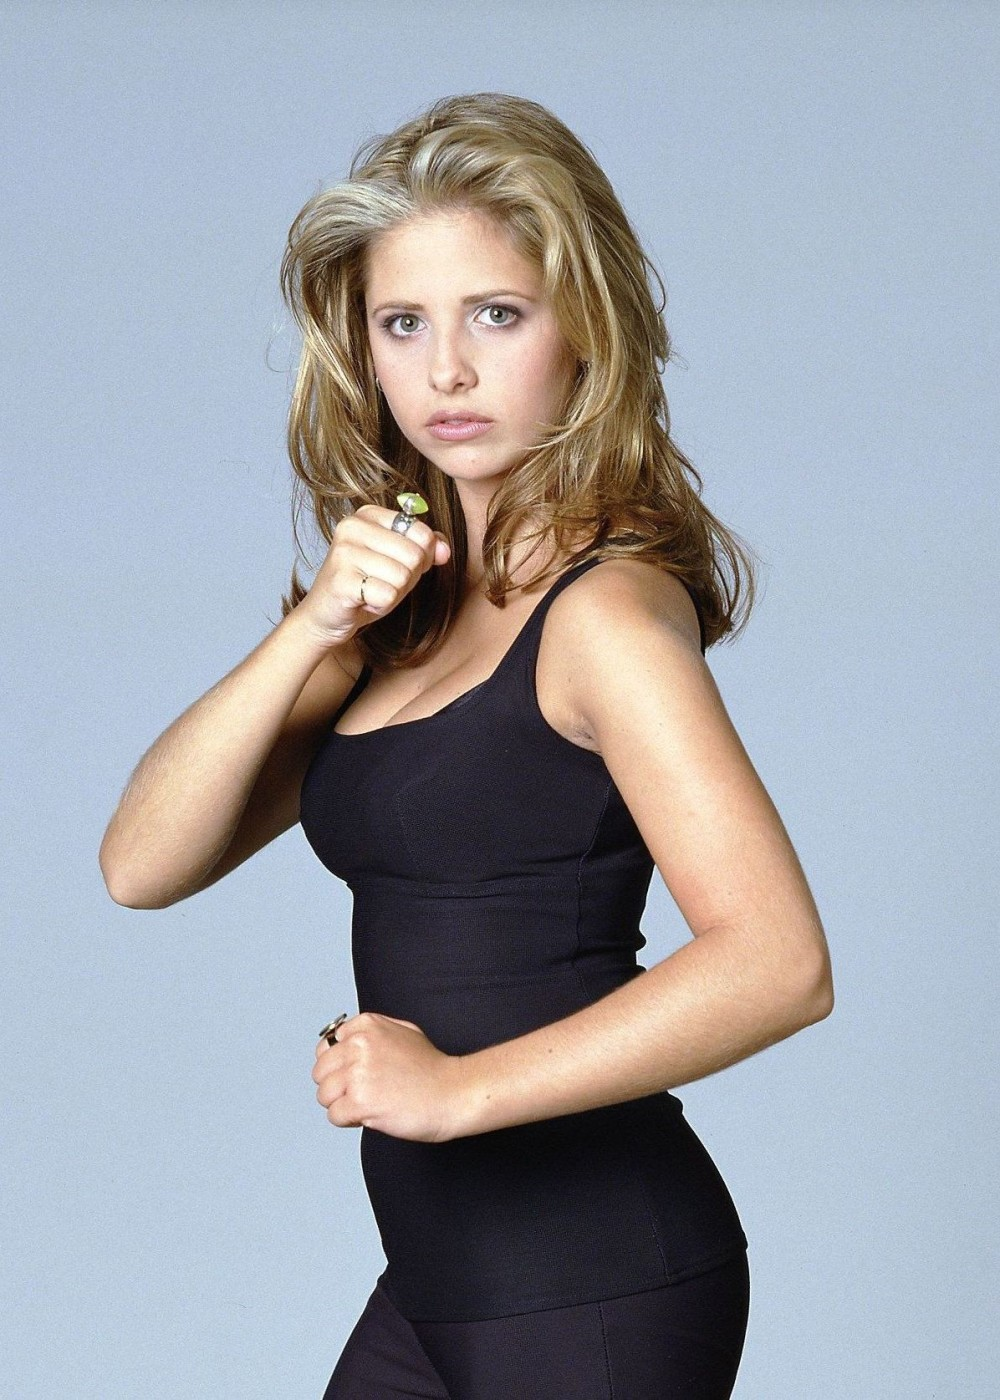 Inspirational Women - Buffy Summers